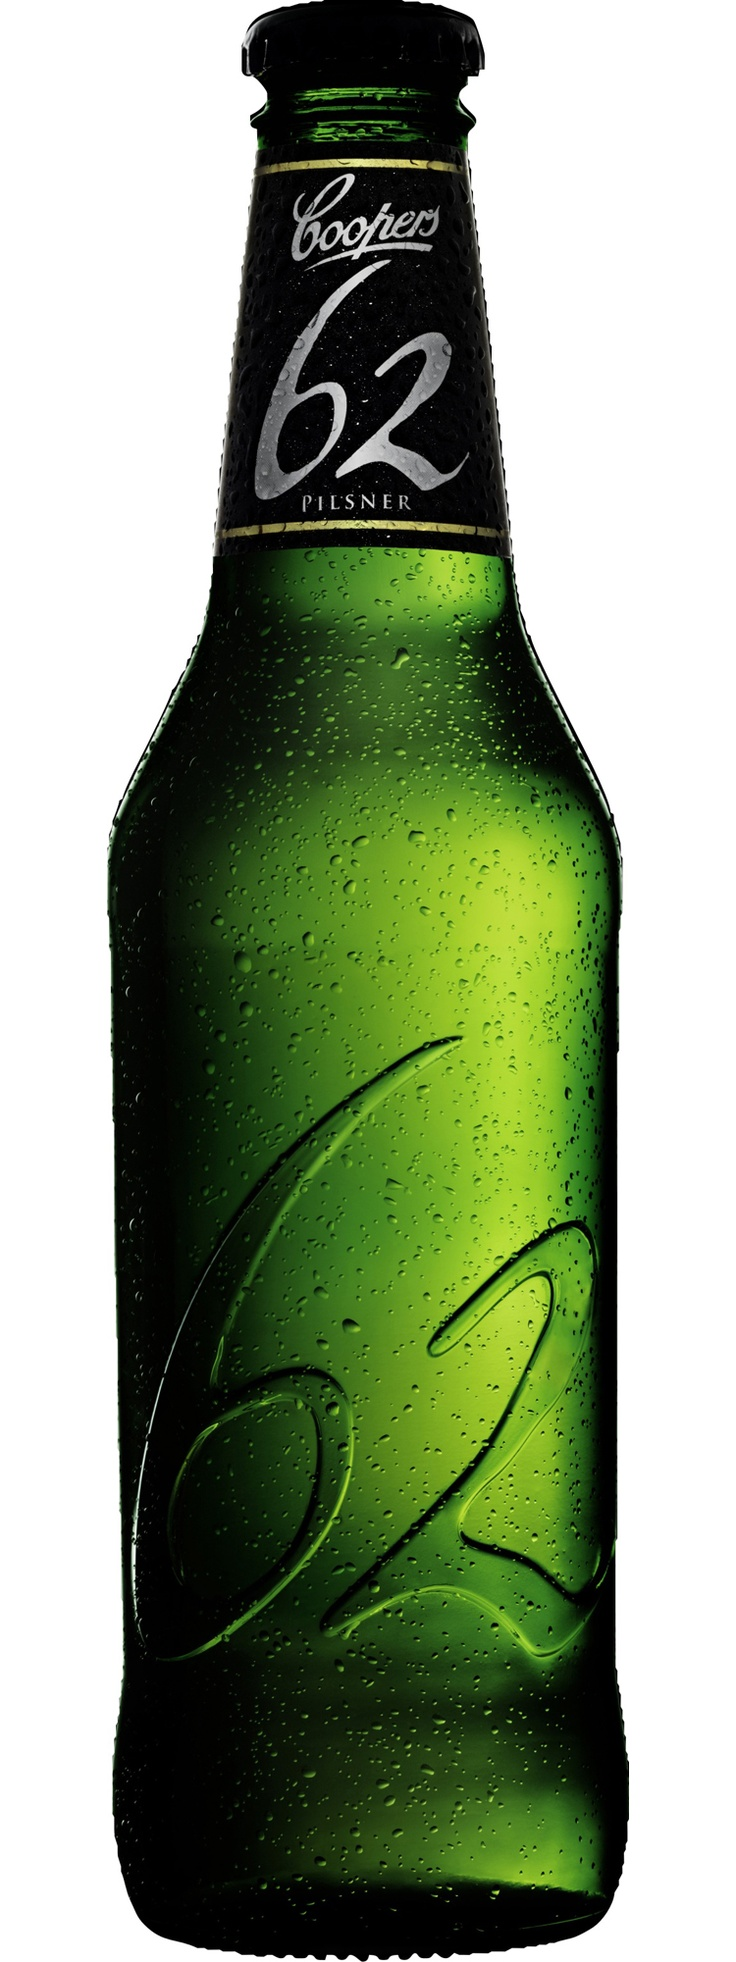 Coopers: 62 Pilsner Great Beer. Some in my fridge right now ..